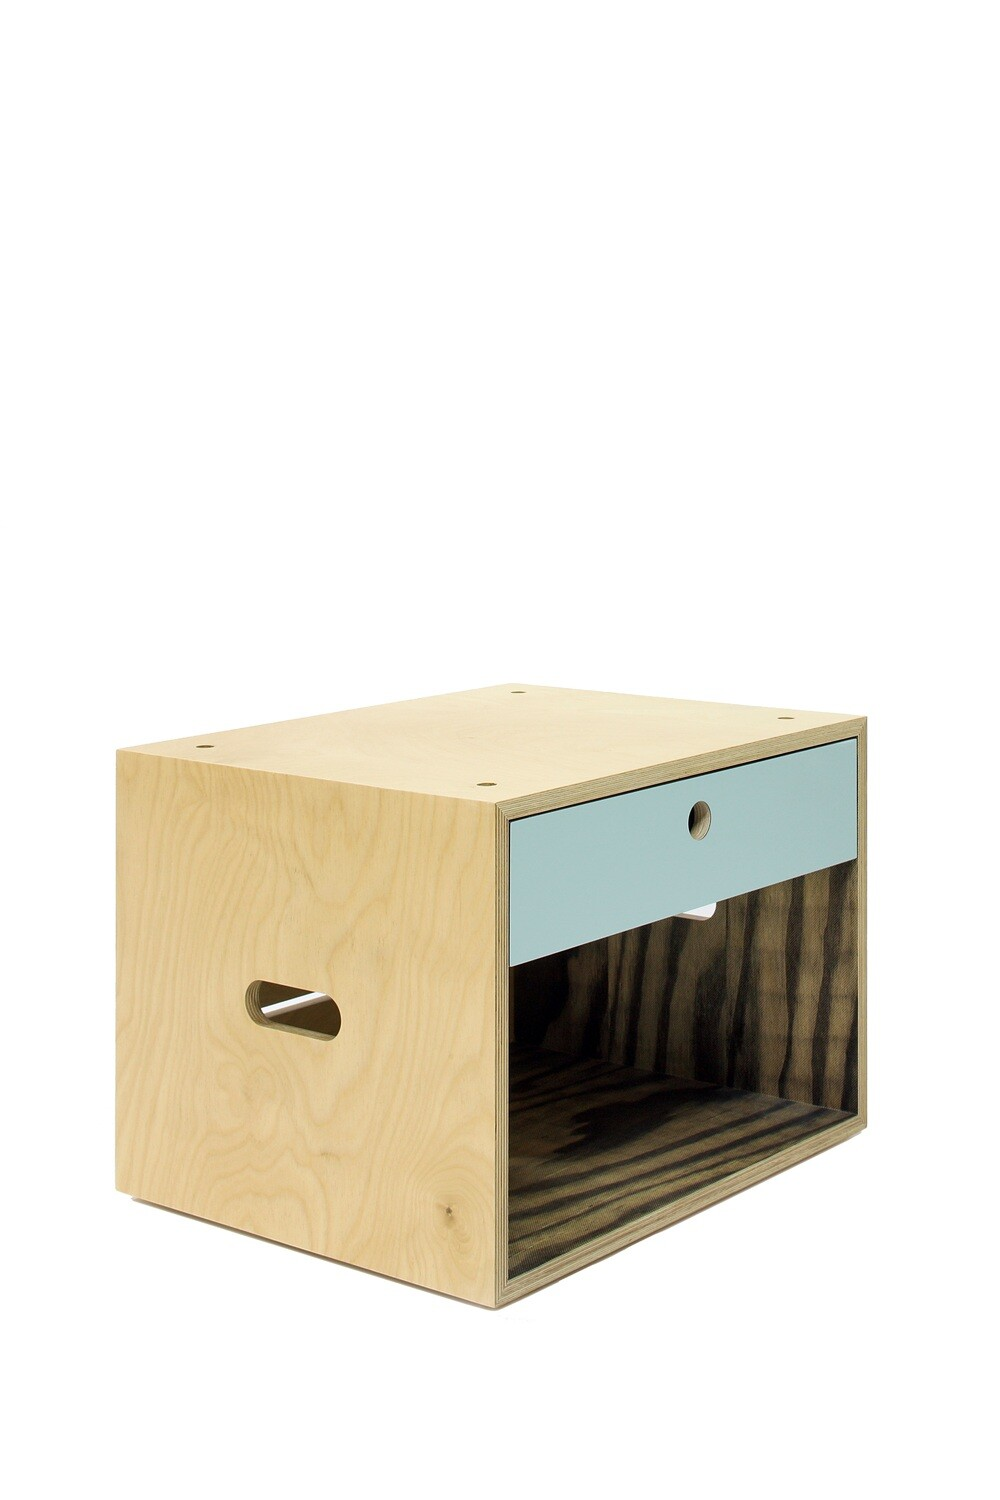 SIDE CRATE